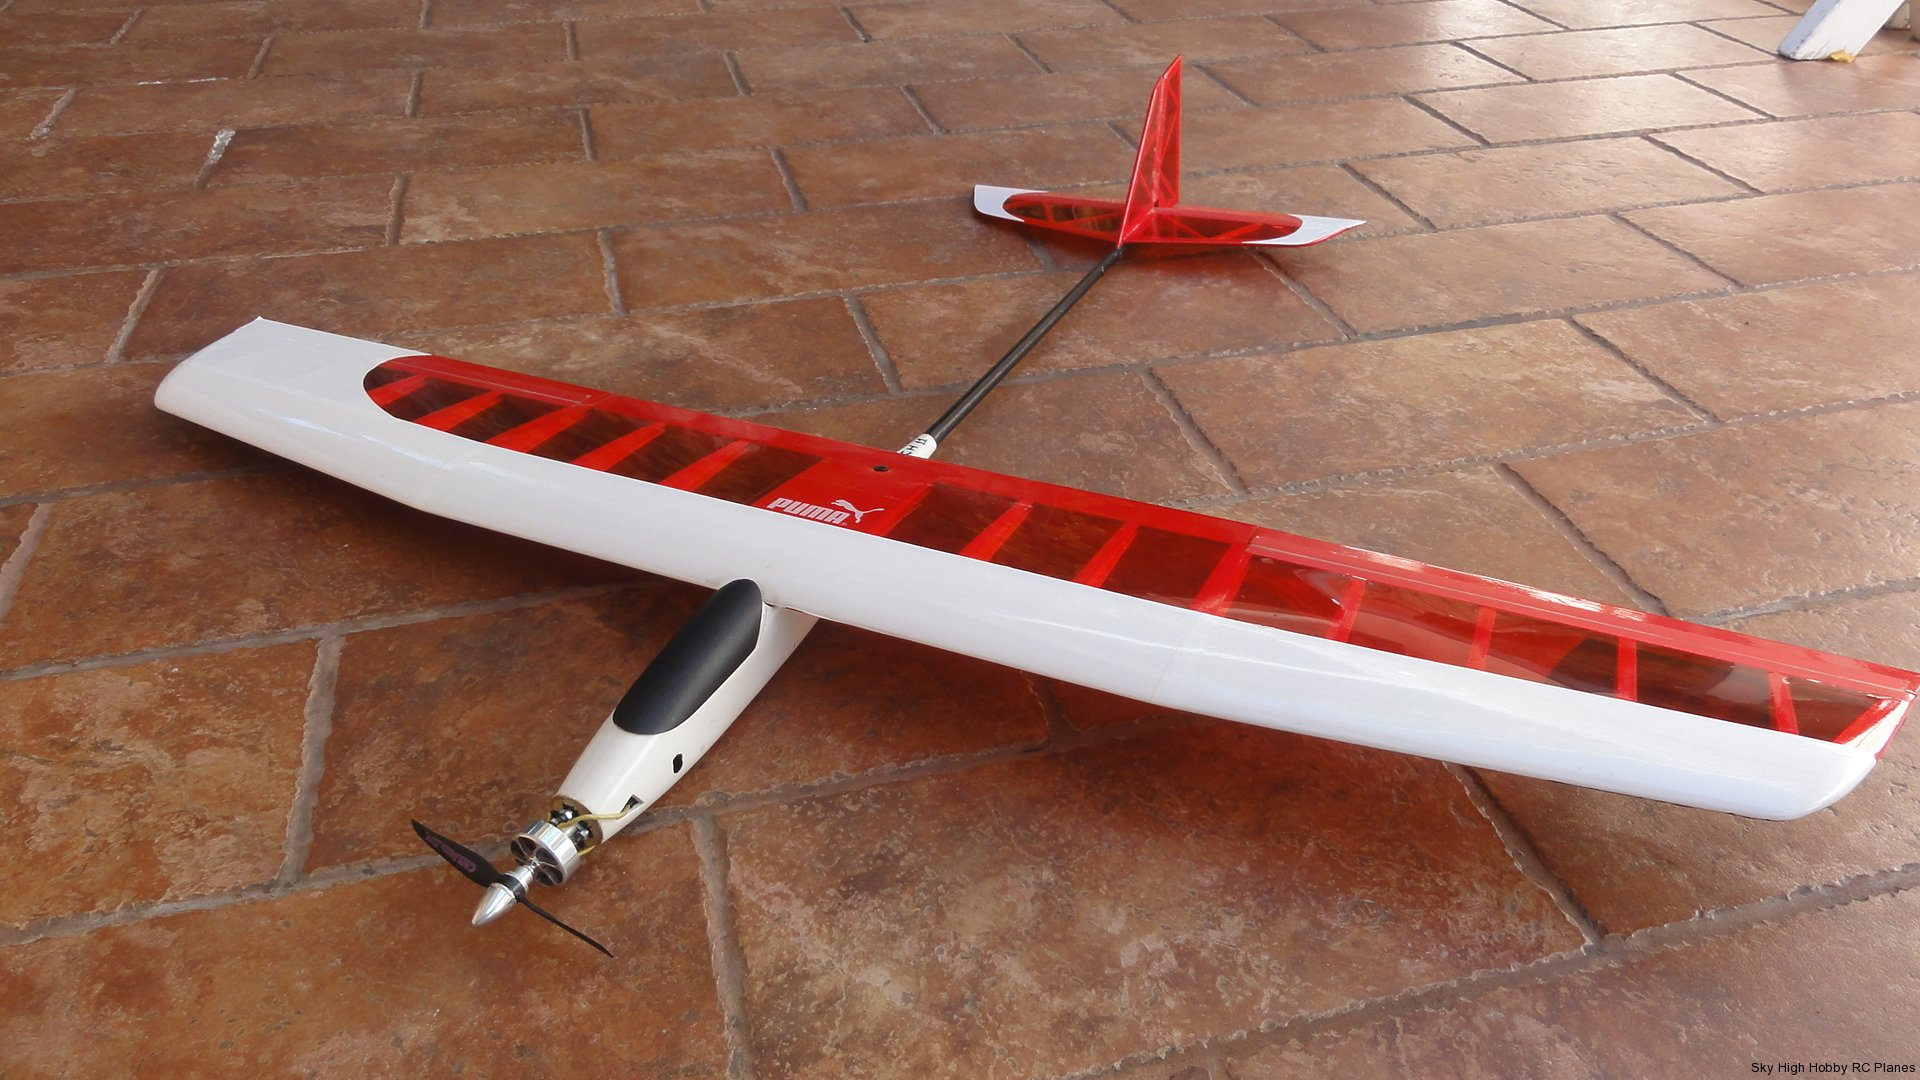 Top model navaho speed glider for Airplane plan